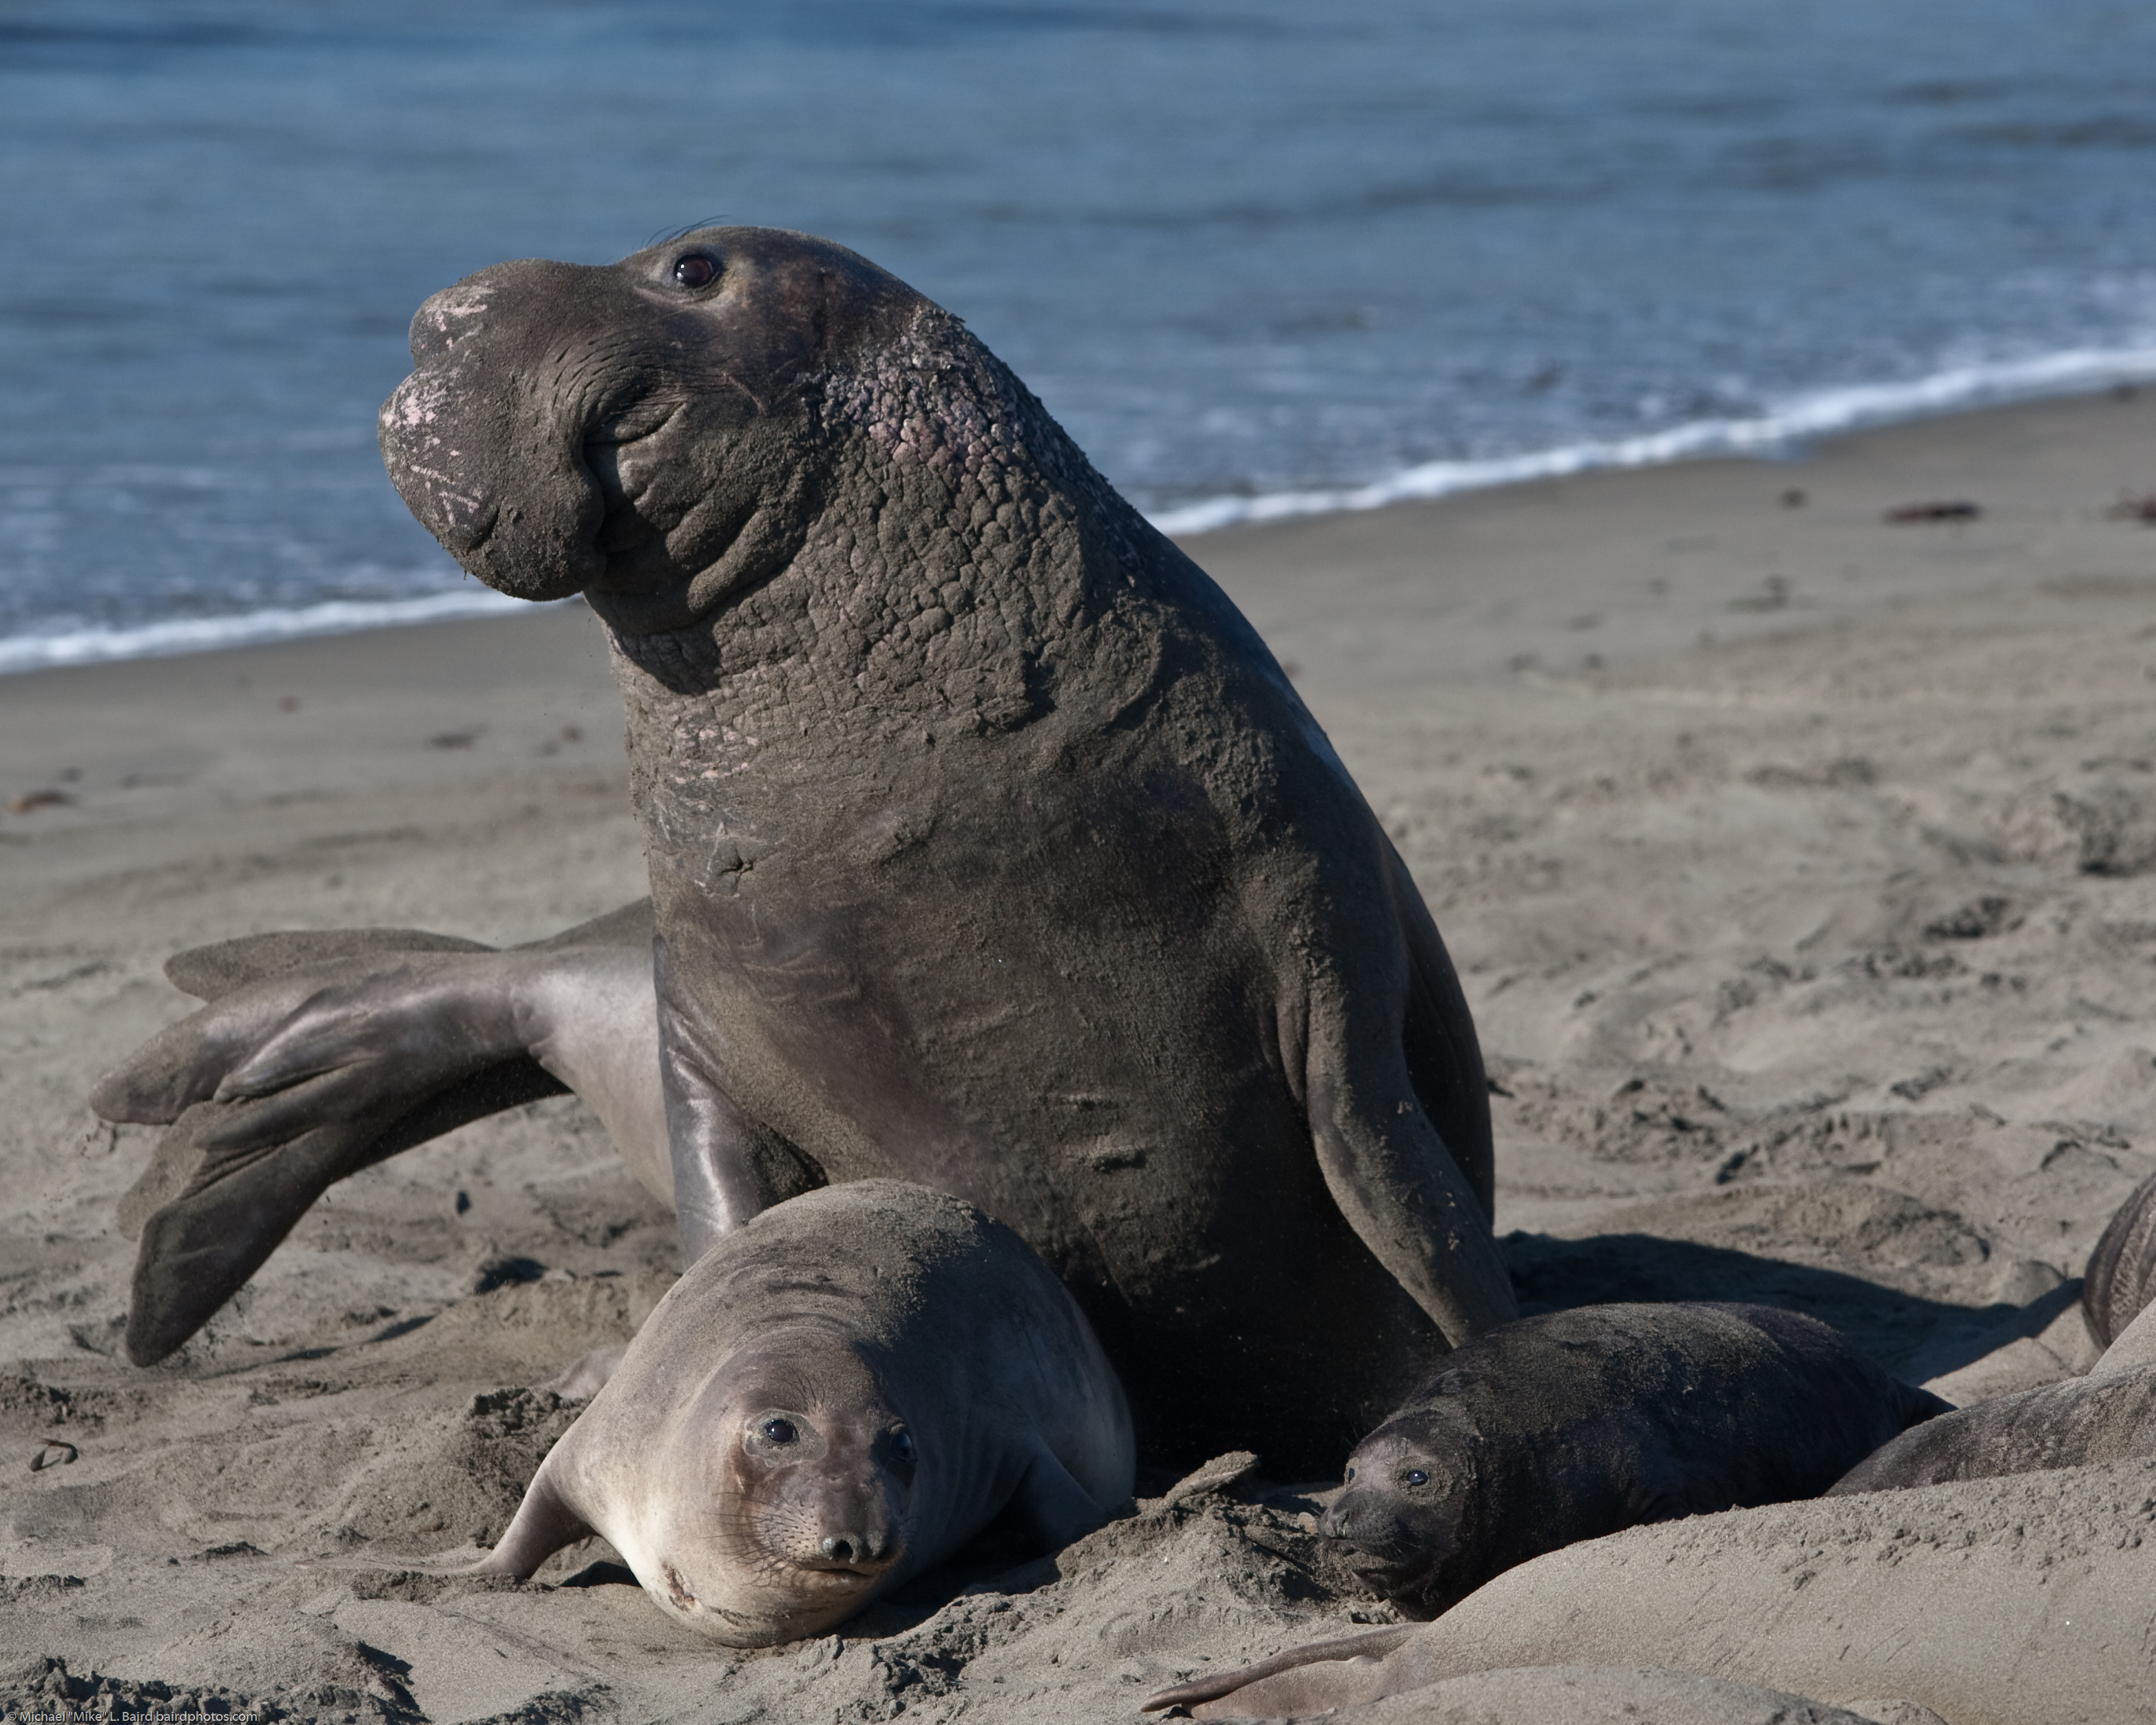 https://upload.wikimedia.org/wikipedia/commons/6/6c/Mating_scene_with_elevated_Alpha_Male._Elephant_Seals_of_Piedras_Blancas.jpg